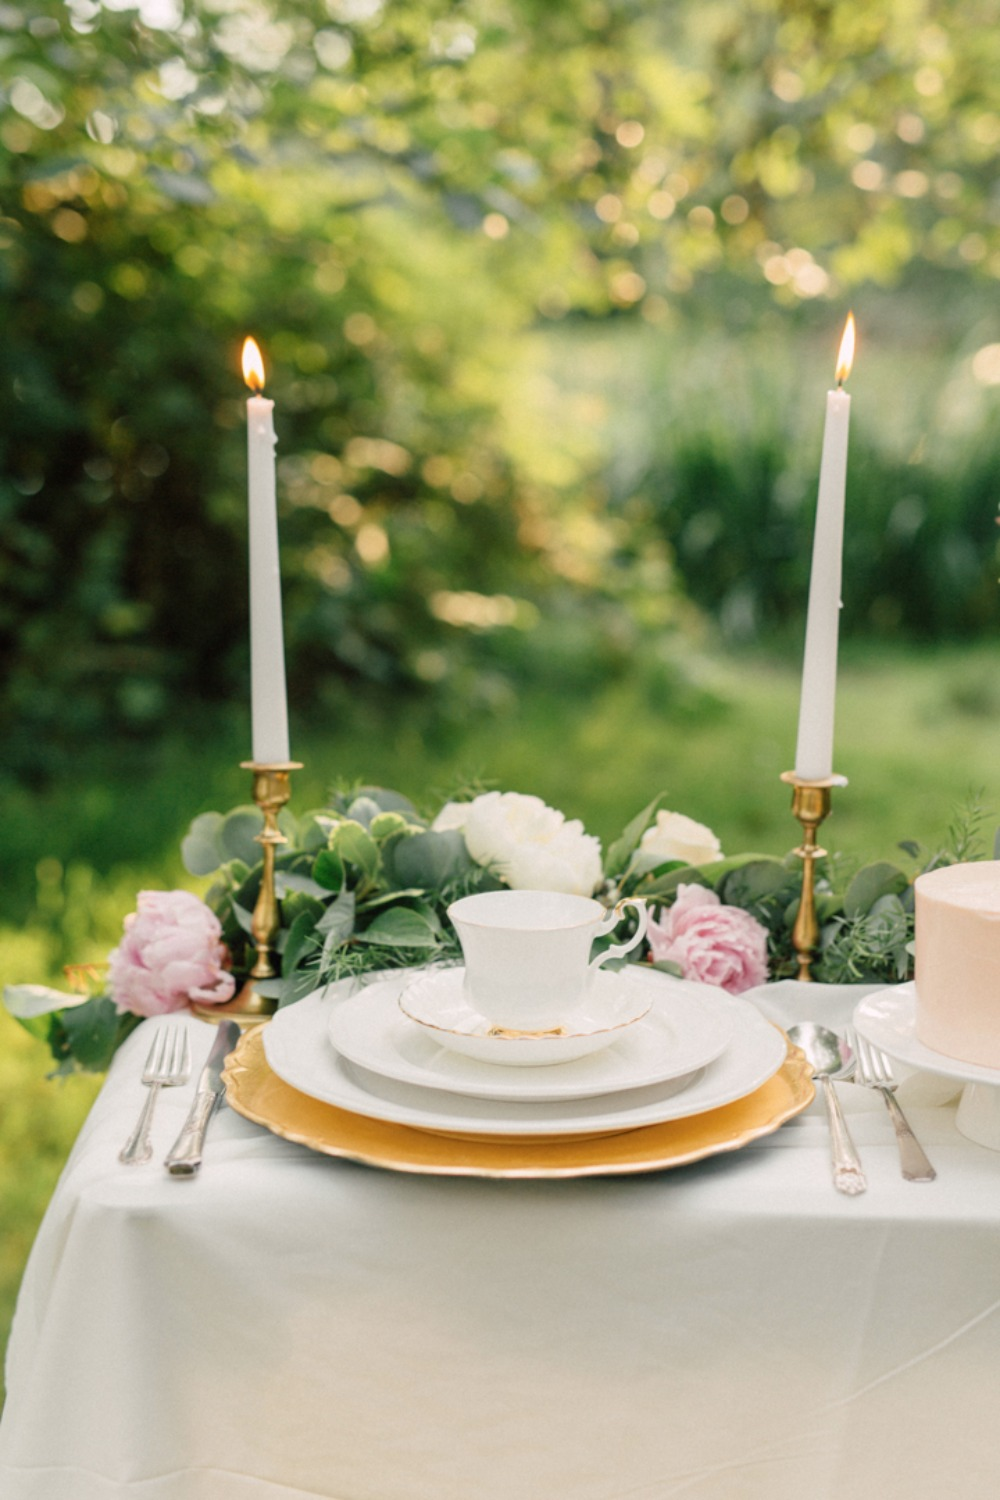 Garden table setting with candle sticks